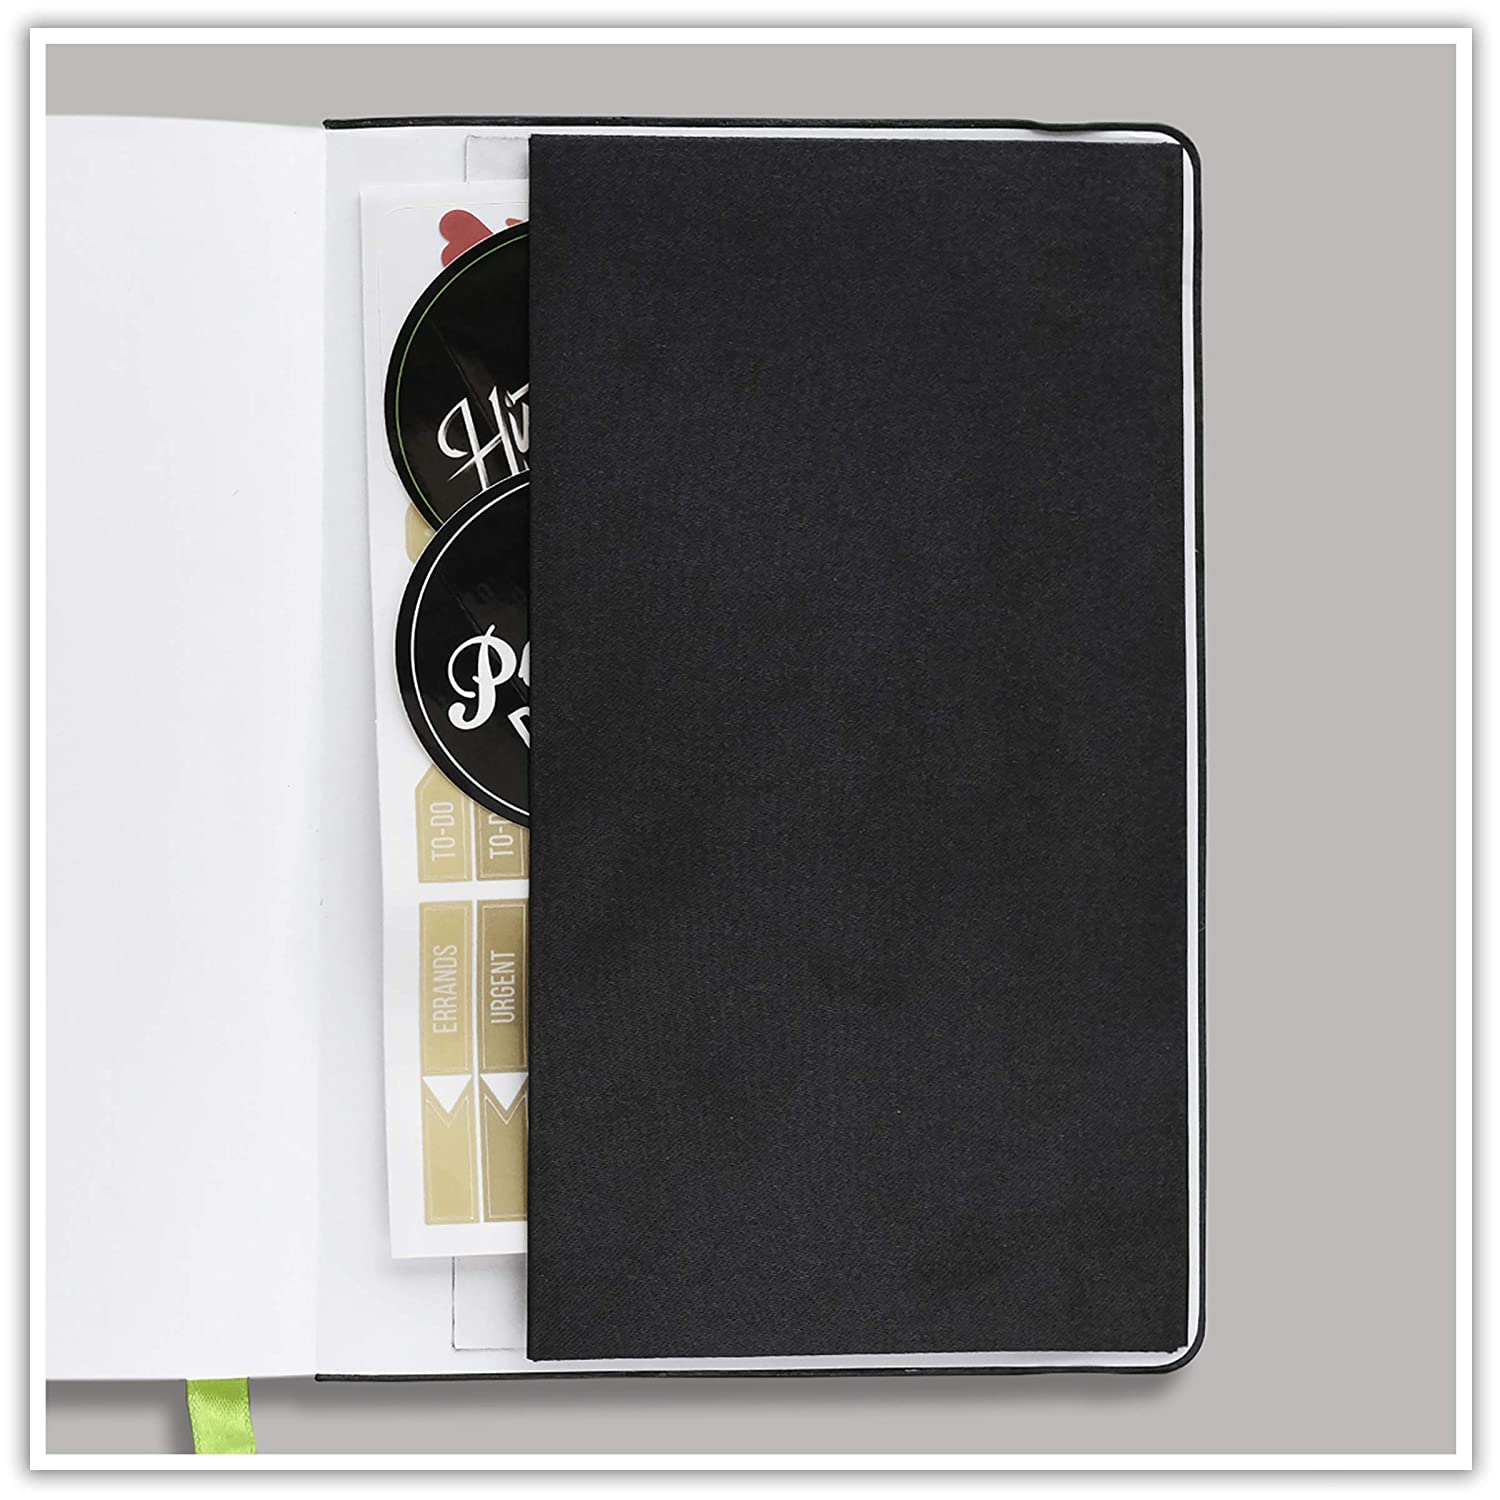 Passion Planner Medium Undated - Goal Oriented Daily Agenda, Appointment Calendar, Reflection Journal - (B5-7